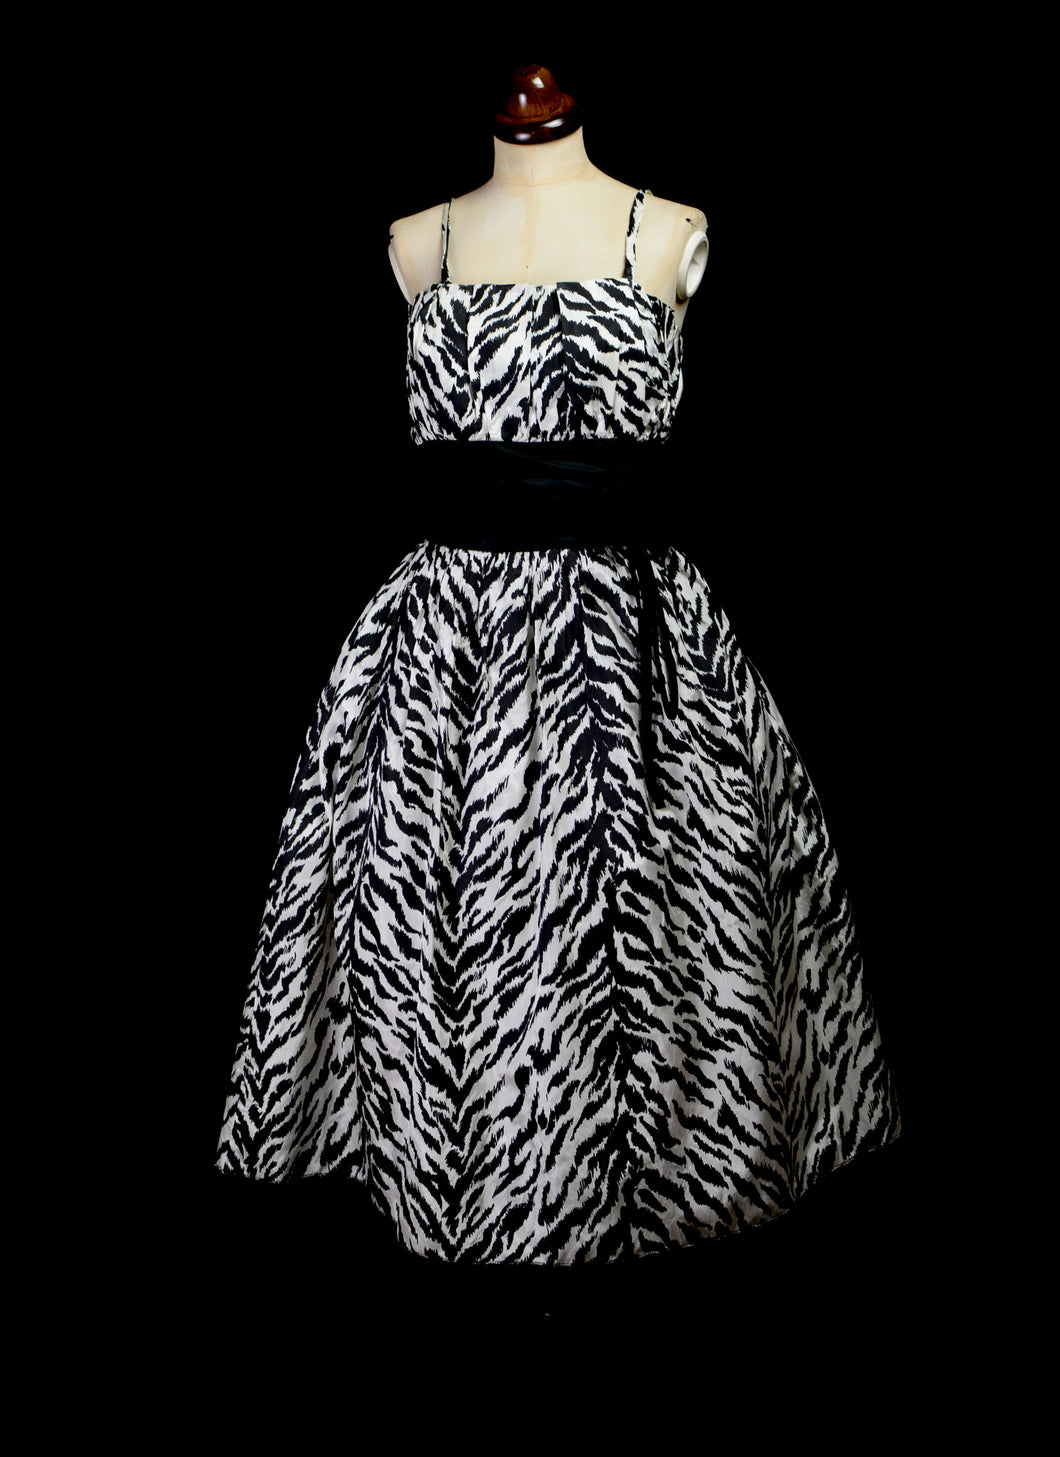 Vintage 1980s Tiger Print Cocktail Dress